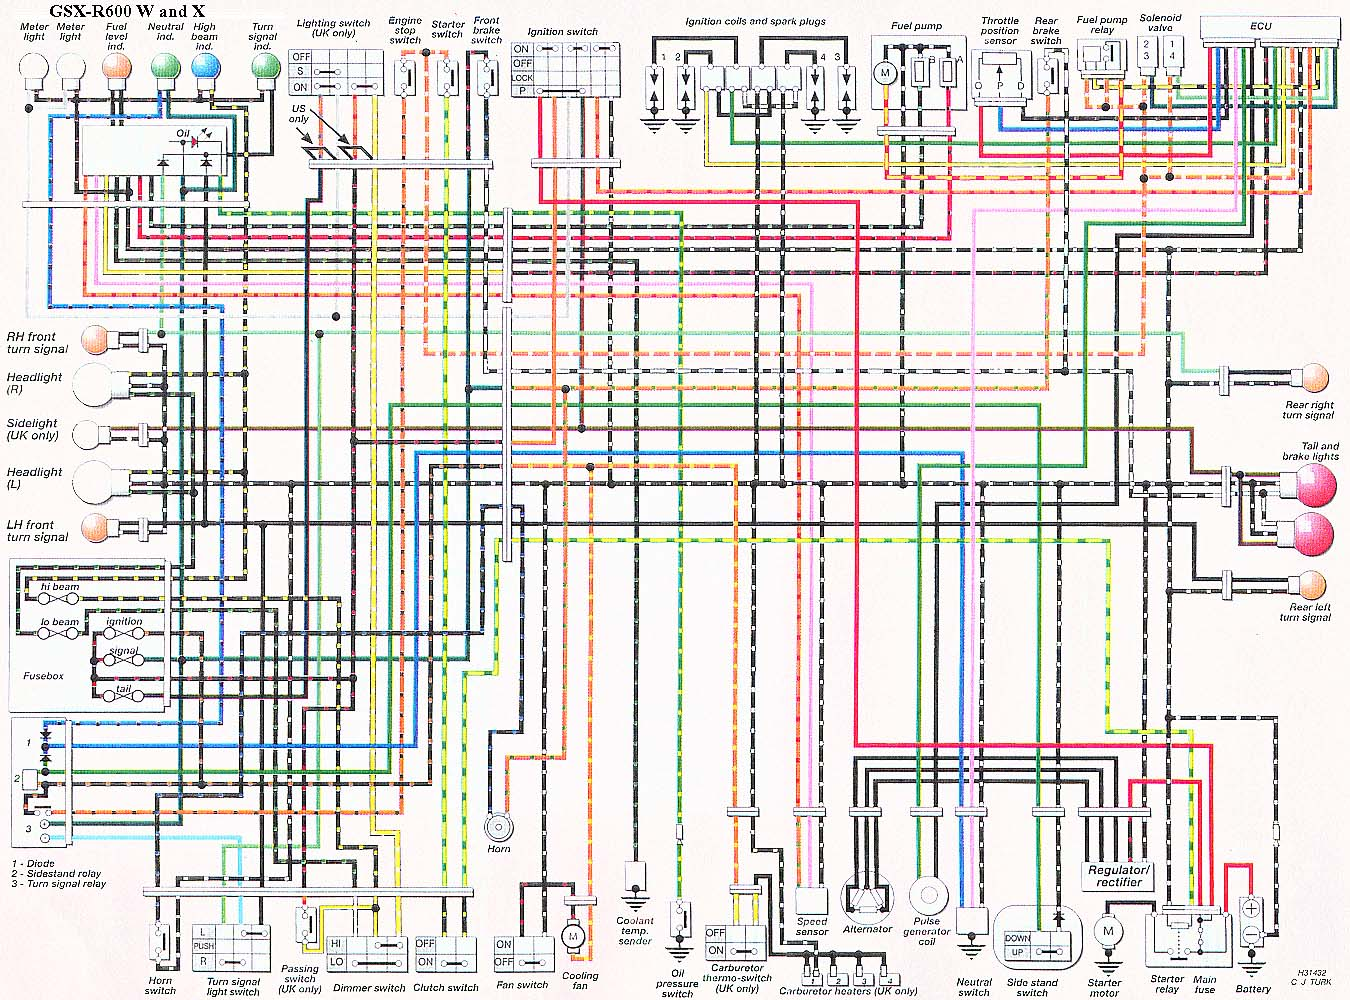 Chevy Aveo Wiring Diagram Moreover Chevy Aveo Serpentine Belt Diagram